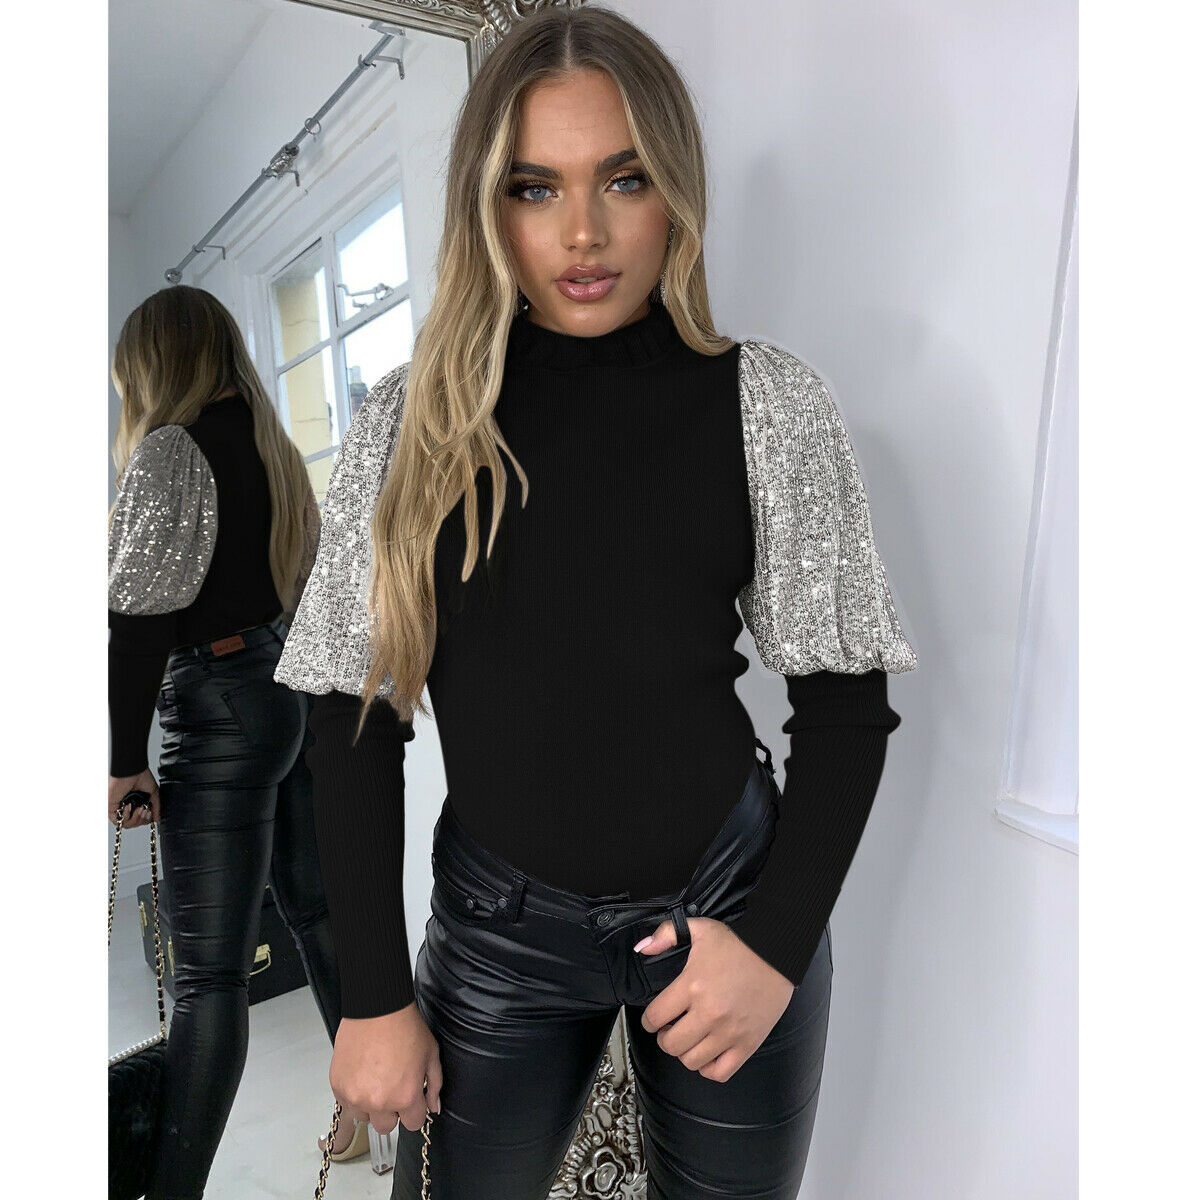 Women Ladies Sequined Sparkle Long Puff Sleeve Tops Pullover High Turtleneck Blouse Evening Party Club Slim Ribbed Shirt